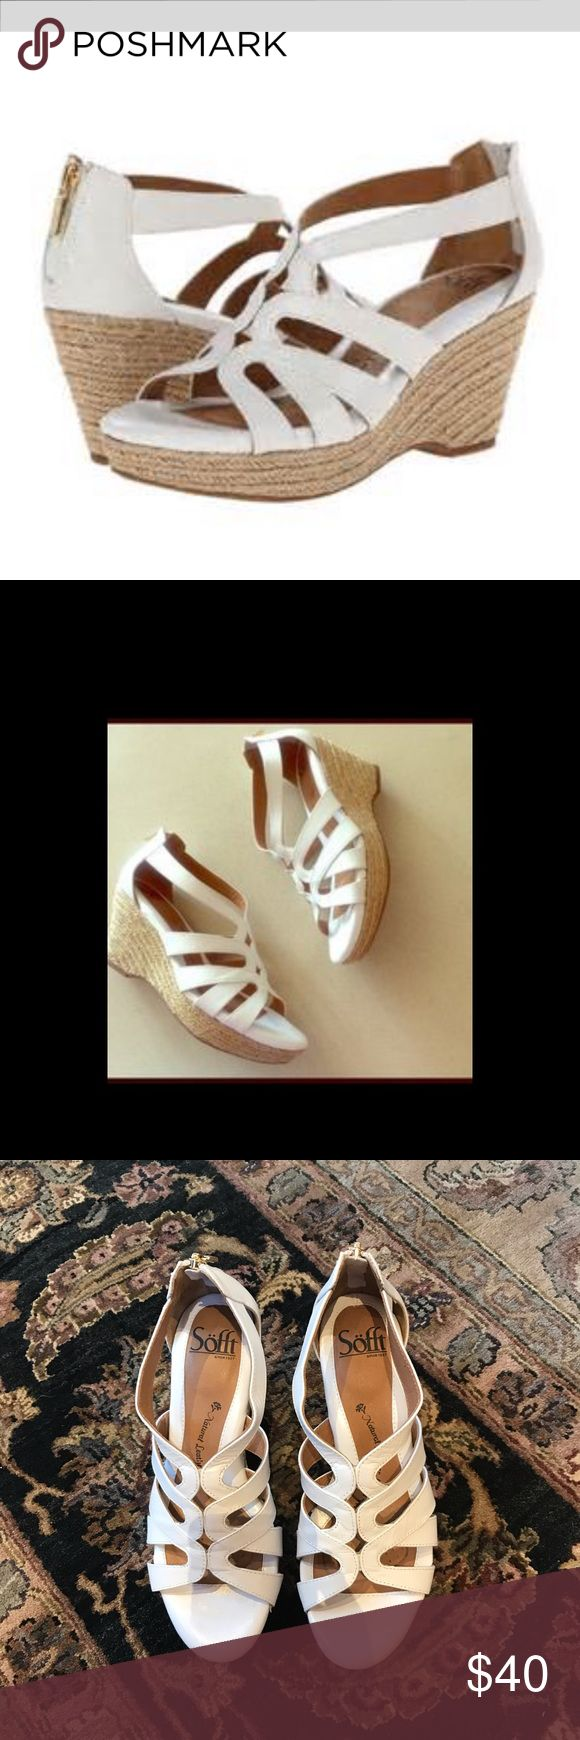 Soft white wedge open toe sandals like new 7 Genuine leather sofft women's Marina white wedge sandals MSRP $87 - like new very soft footbed- wedge approx. 3in. Sofft Shoes Wedges